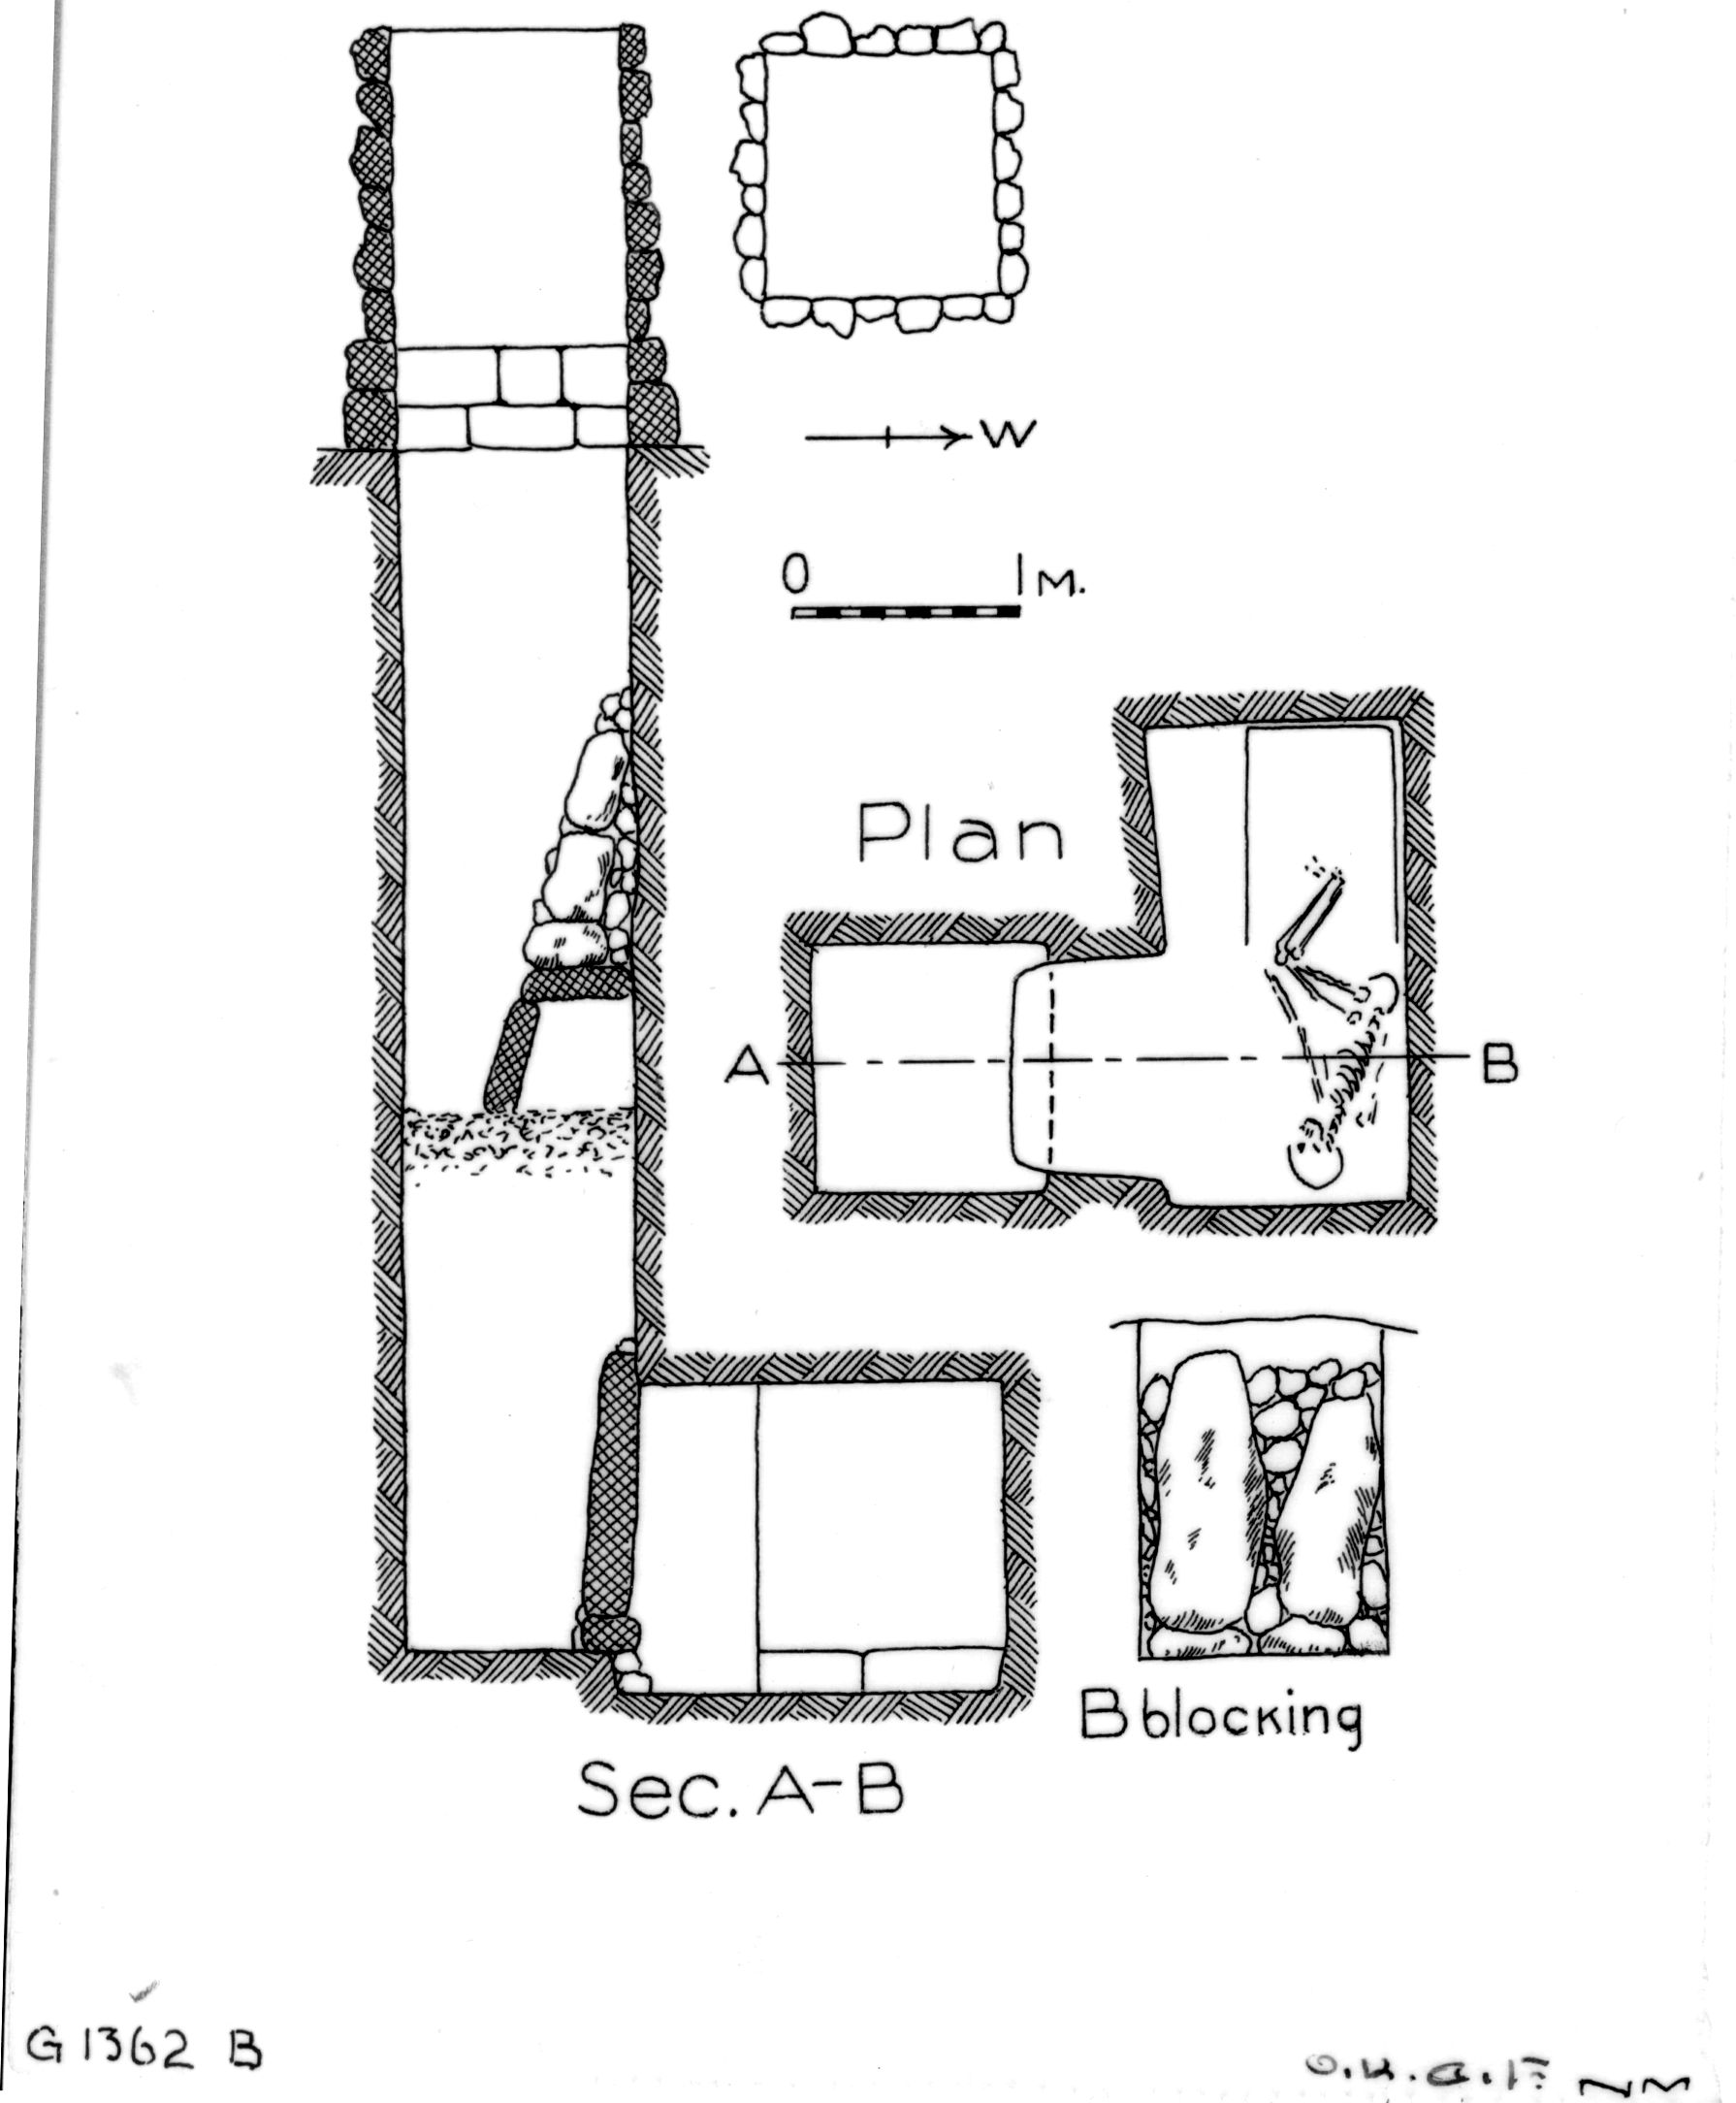 Maps and plans: G 1362, Shaft B